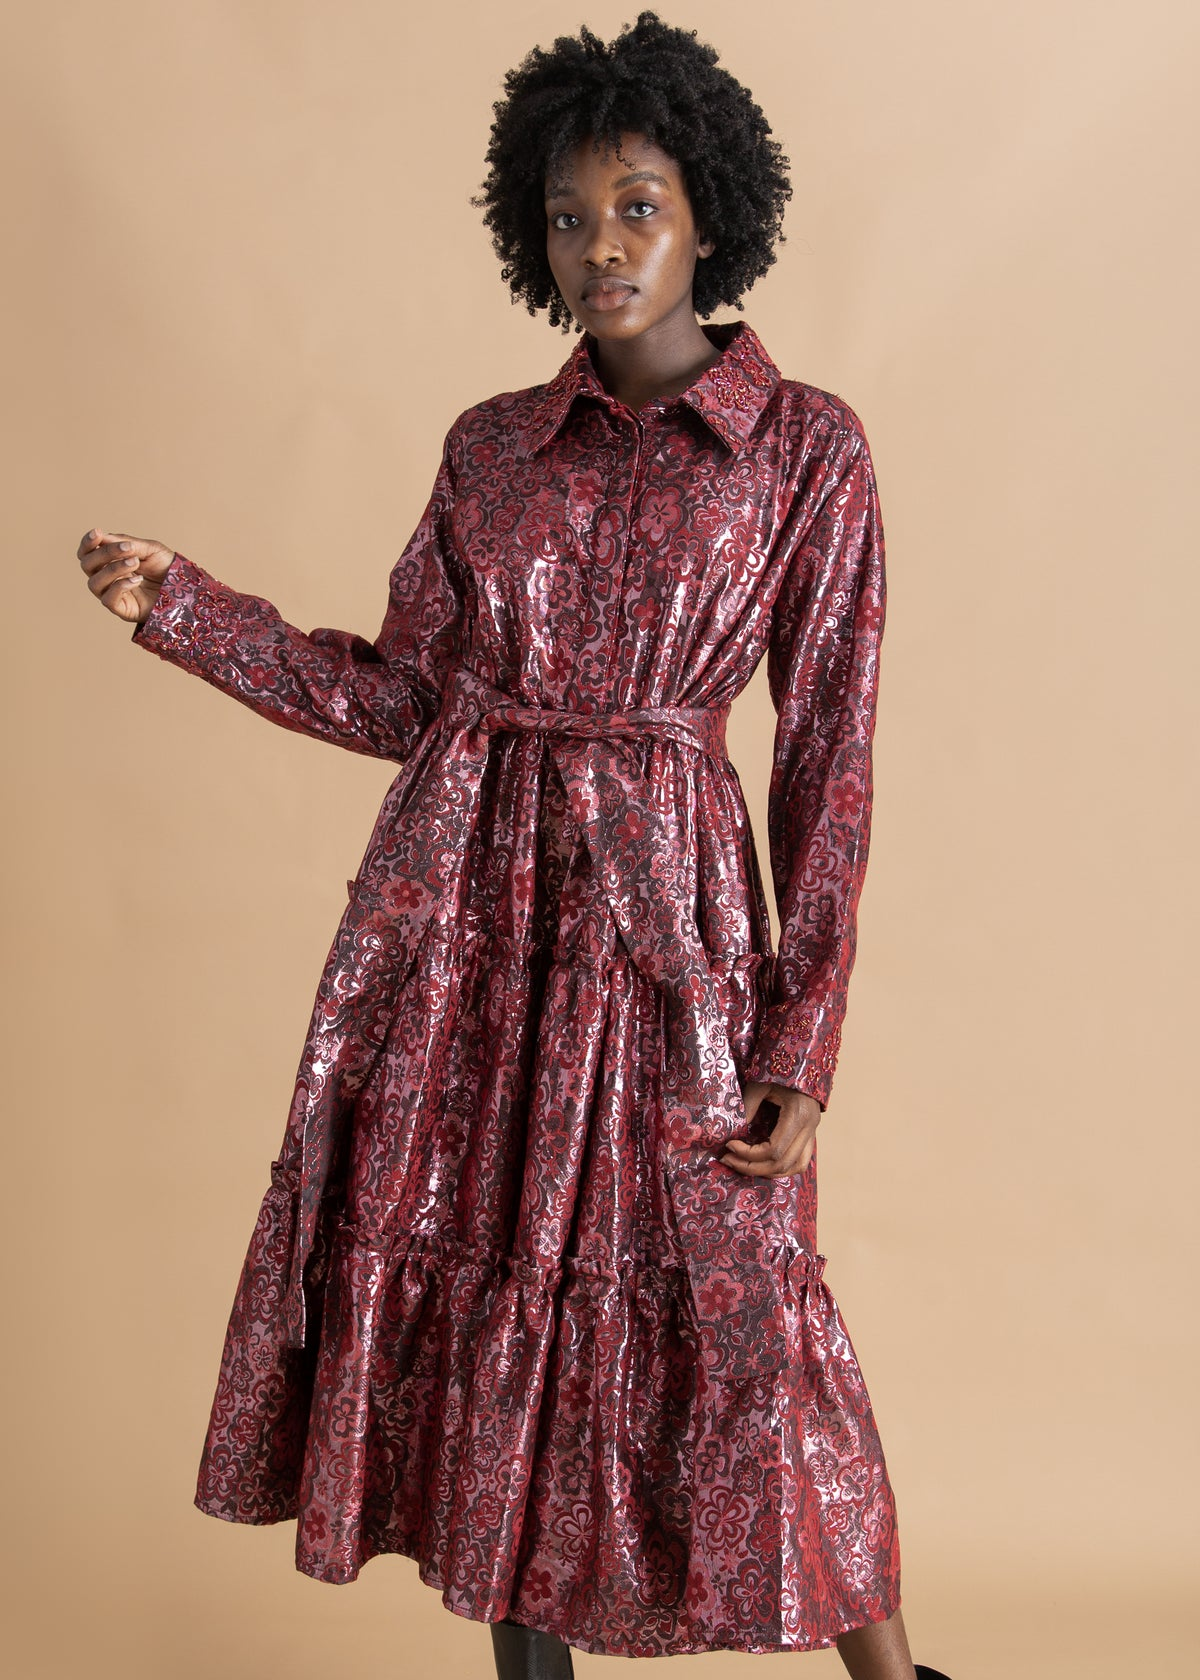 Onalaja Pink mid-length floral jacquard dress